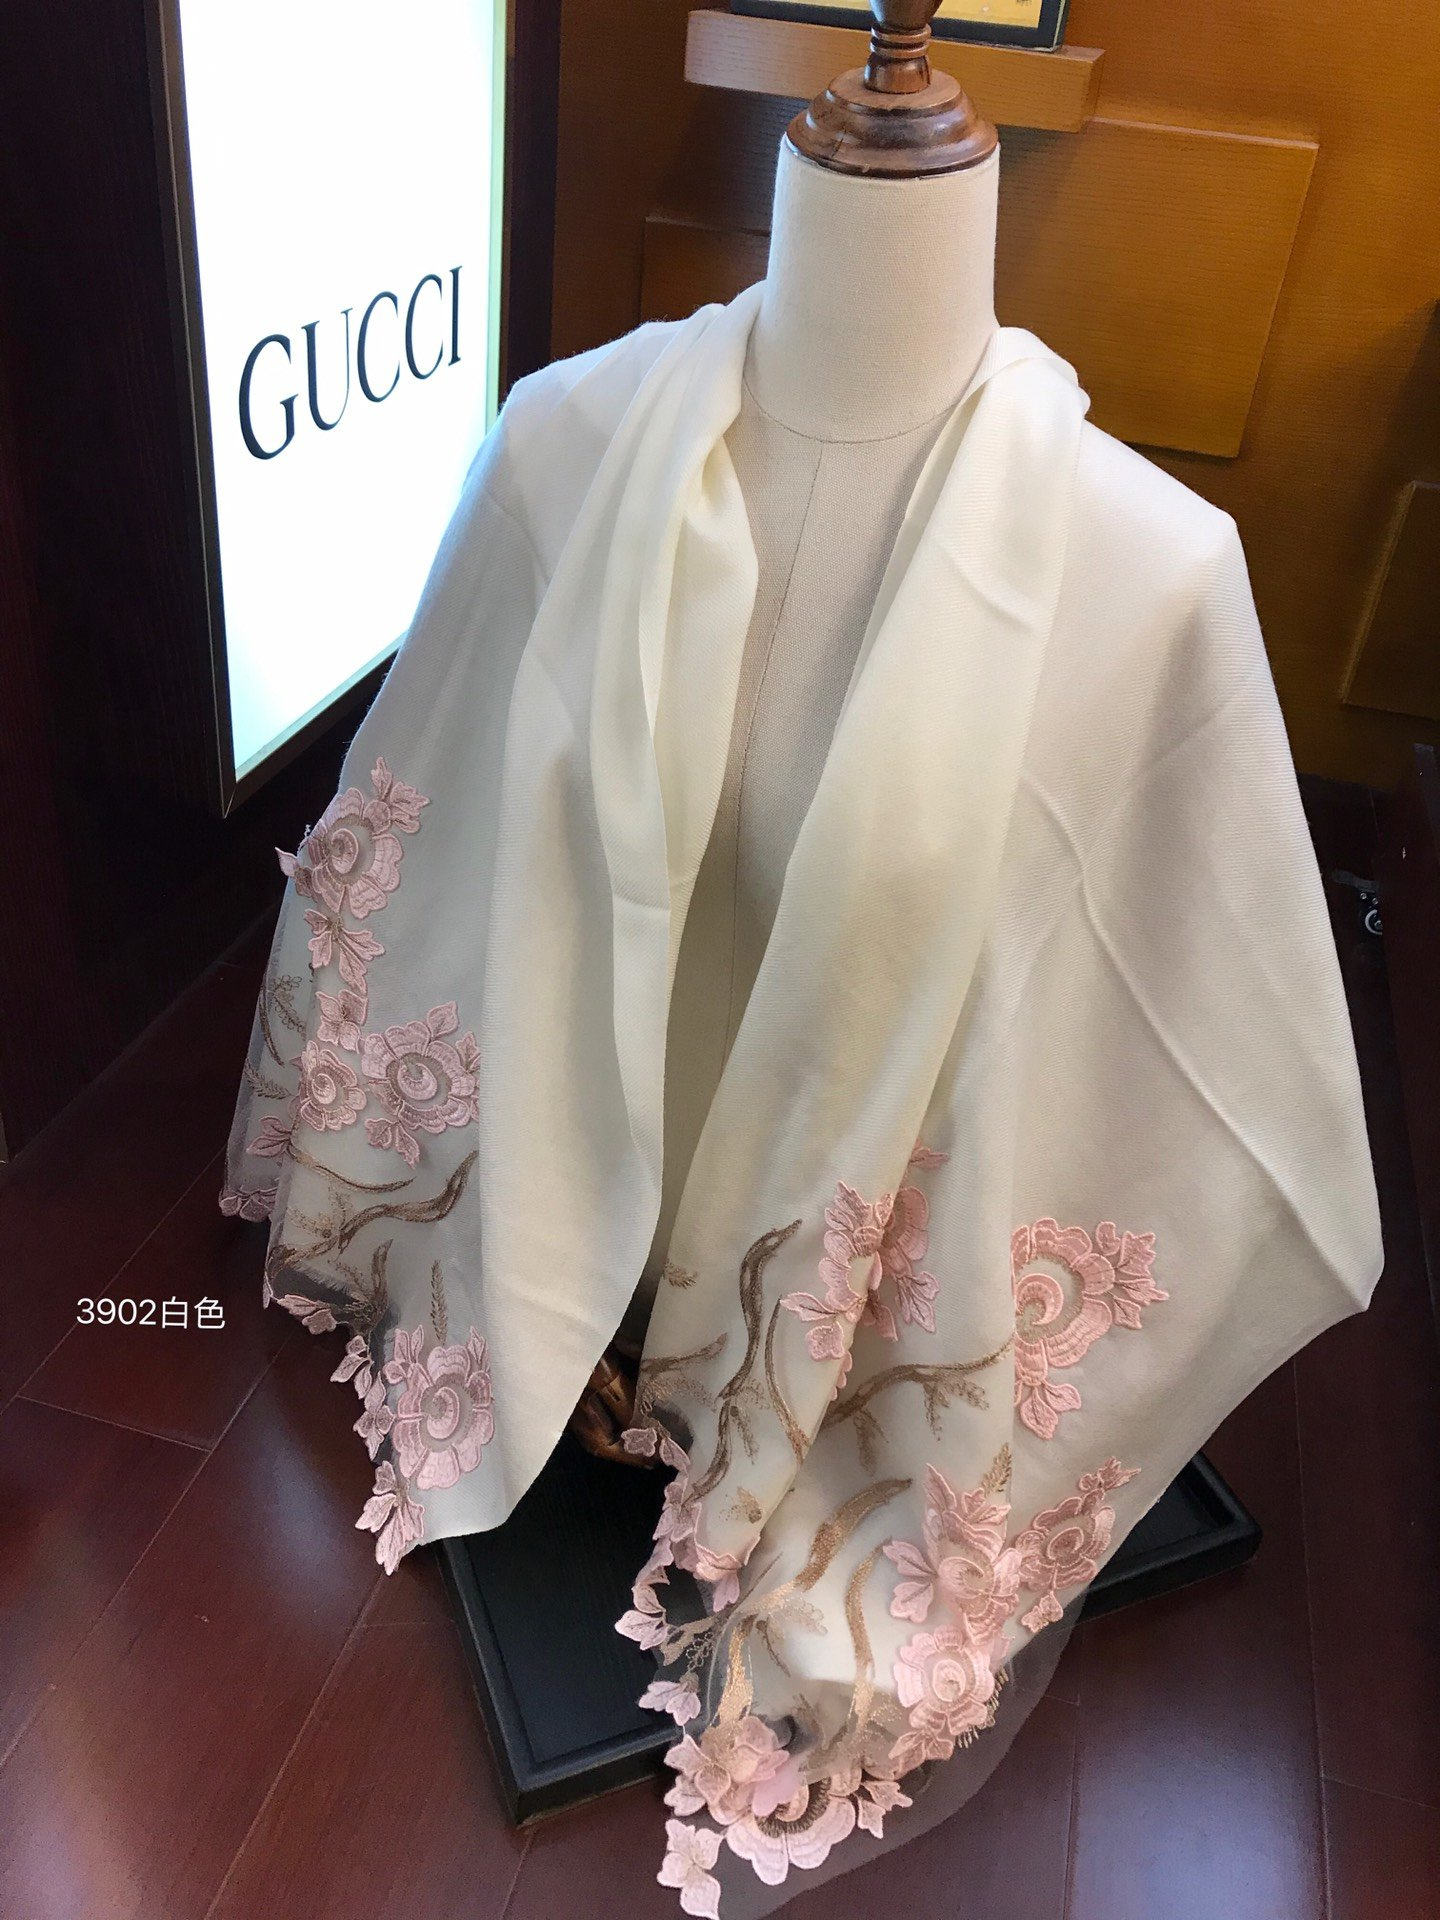 Cheap Replica Gucci Women Scarves 0006